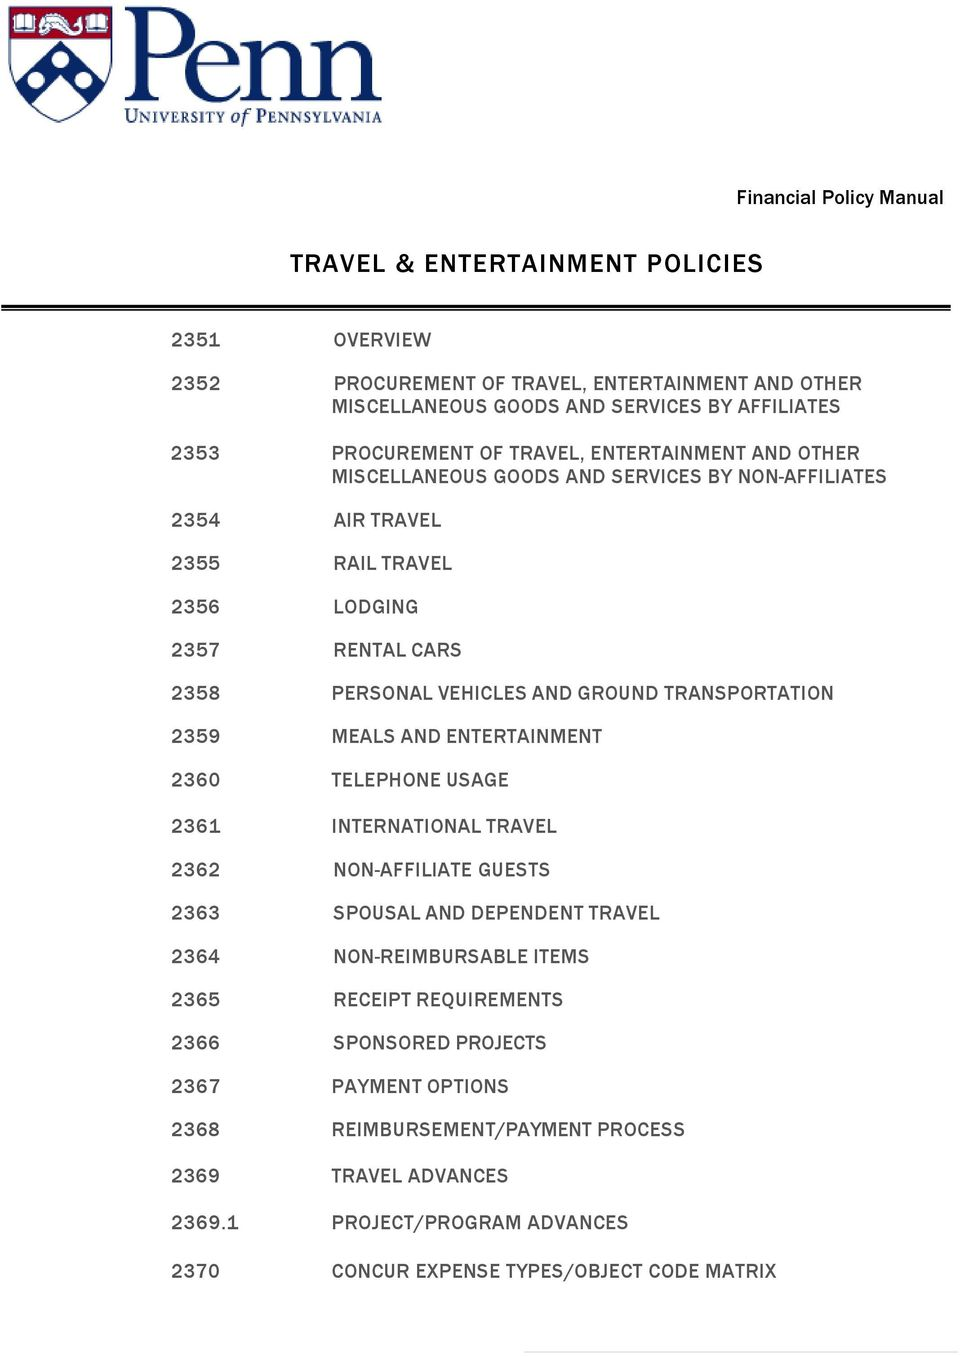 TRANSPORTATION 2359 MEALS AND ENTERTAINMENT 2360 TELEPHONE USAGE 2361 INTERNATIONAL TRAVEL 2362 NON-AFFILIATE GUESTS 2363 SPOUSAL AND DEPENDENT TRAVEL 2364 NON-REIMBURSABLE ITEMS 2365